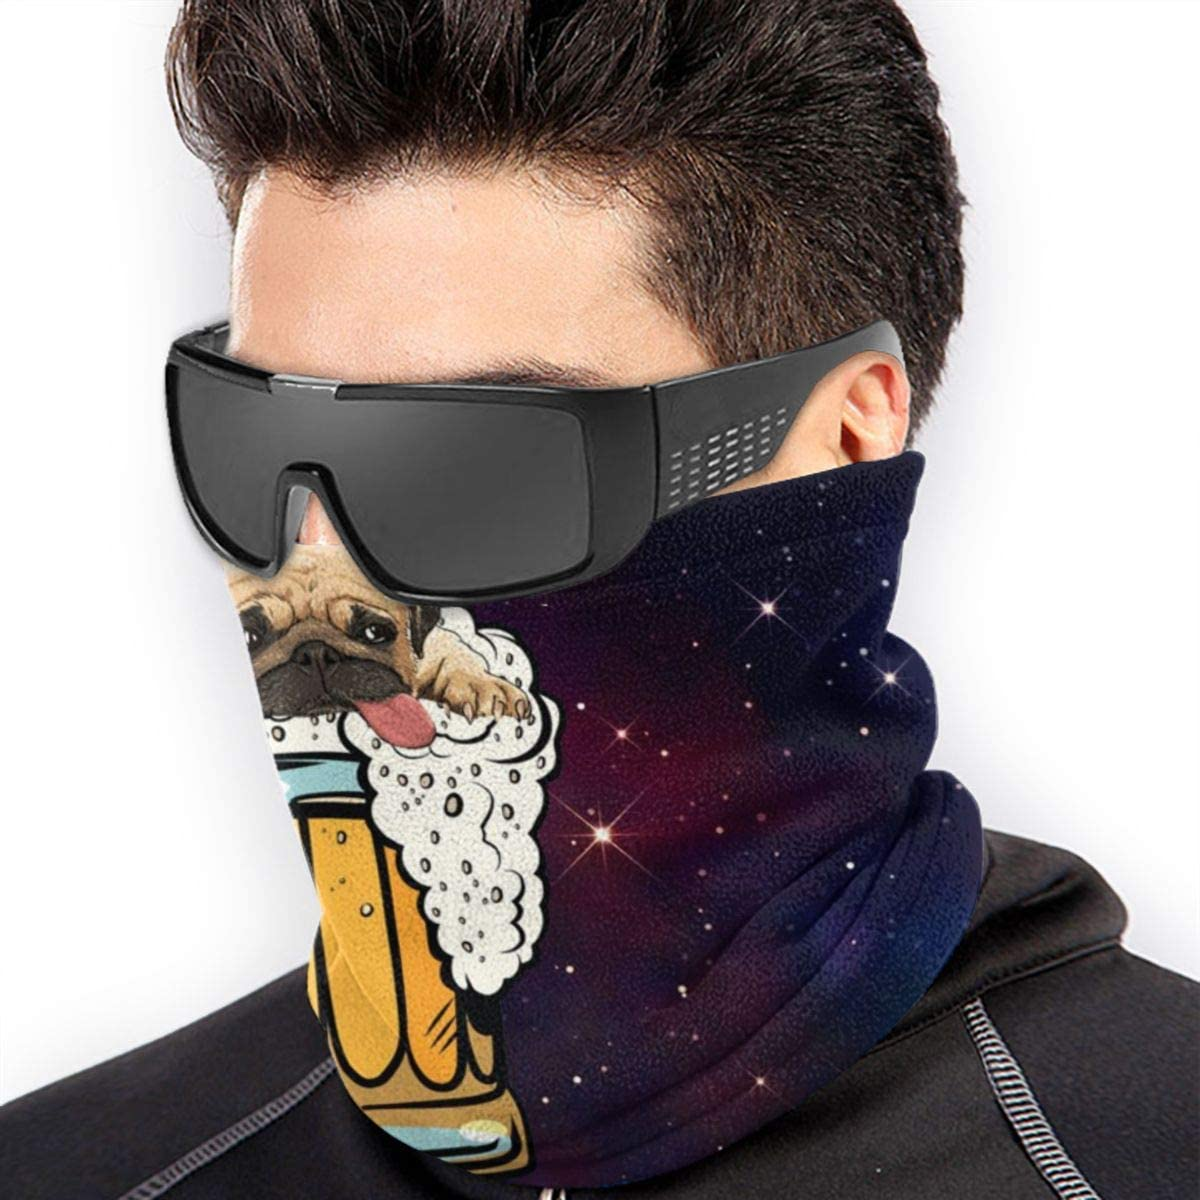 CLERO& Scarf Fleece Neck Warmer Pug Dog Beer Drinking Party Funny Windproof Outdoor Headwear Comfortable Neck Gaiter Warmer Face Mask for Cold Weather Winter Outdoor Sports